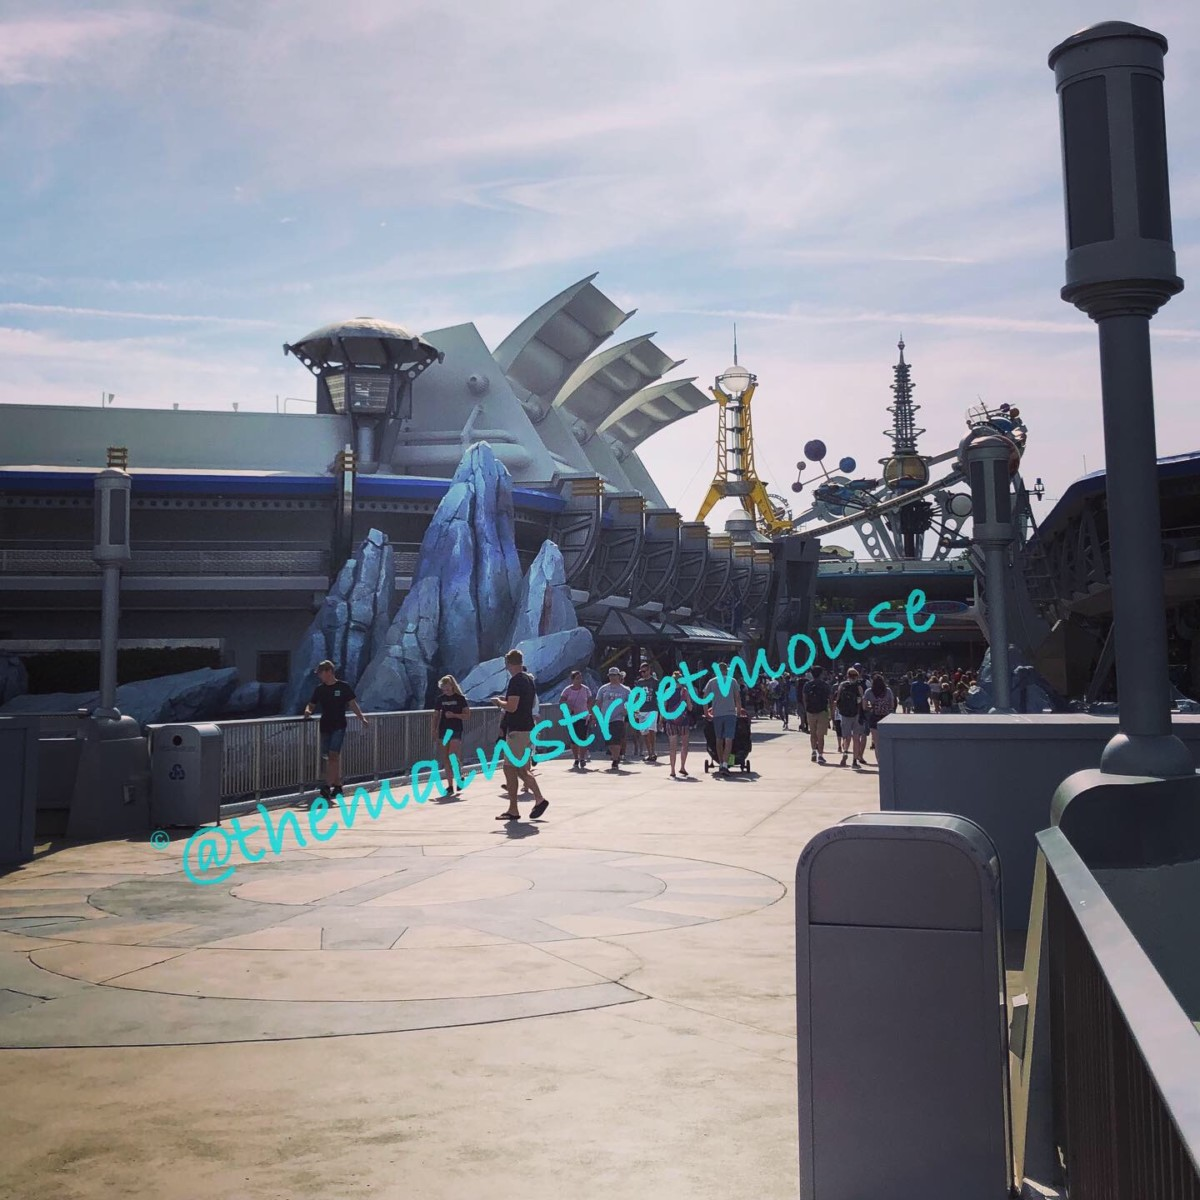 The Tomorrowland Sign is Gone at Magic Kingdom 4